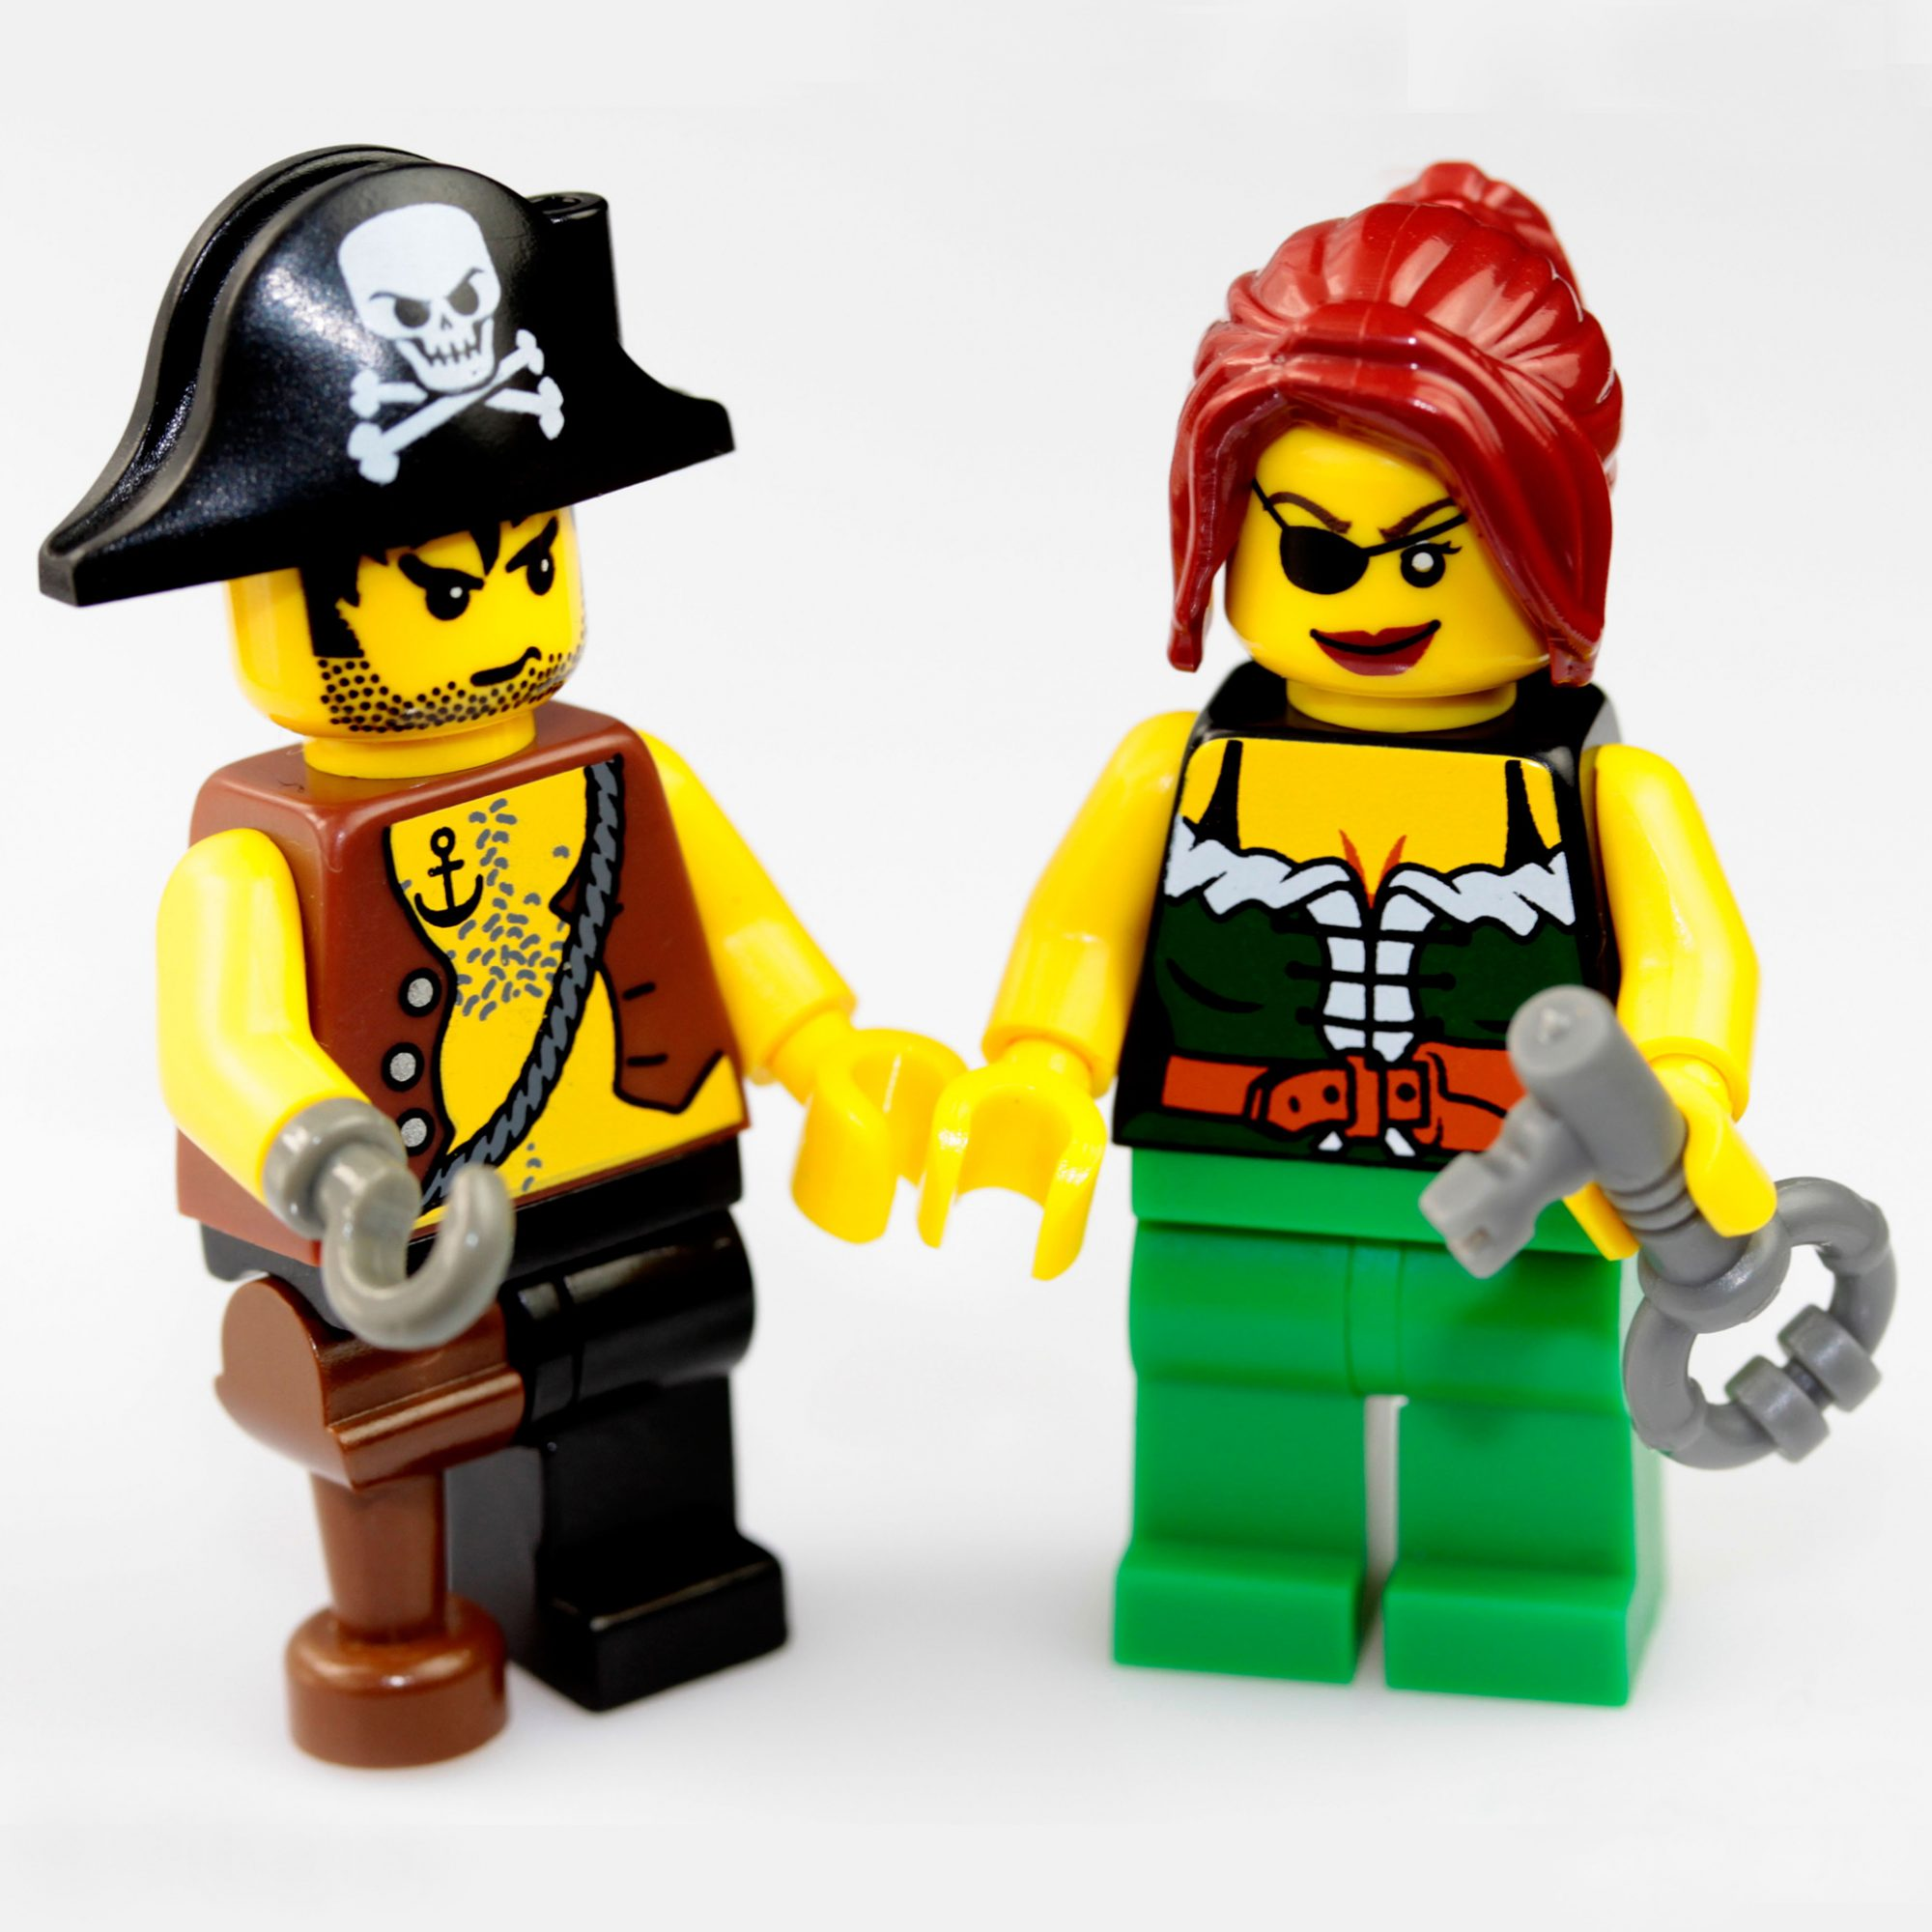 Keep talking about your imaginary ex, the Lego pirate man Captain Redbeard.™